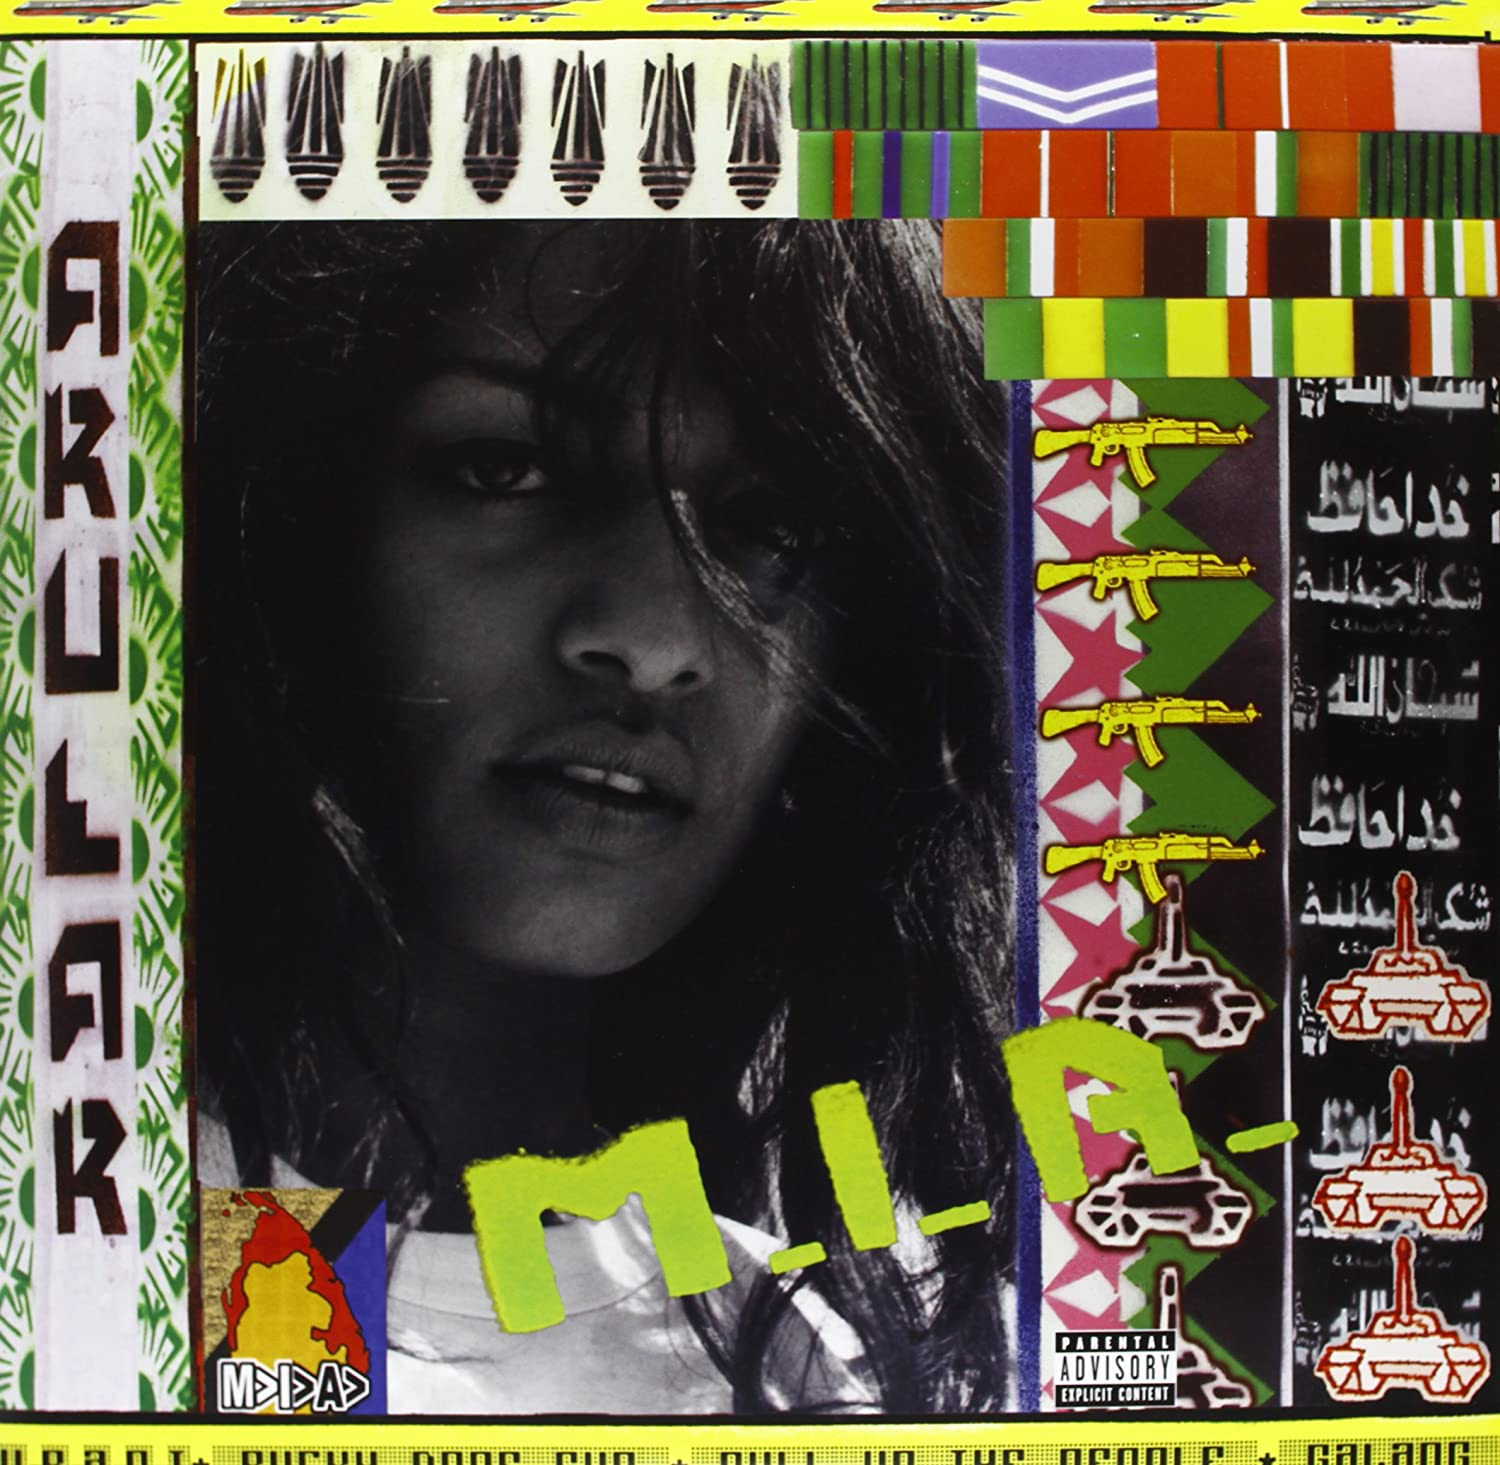 This year marks the 15th anniversary of her debut studio album Arular (2005).